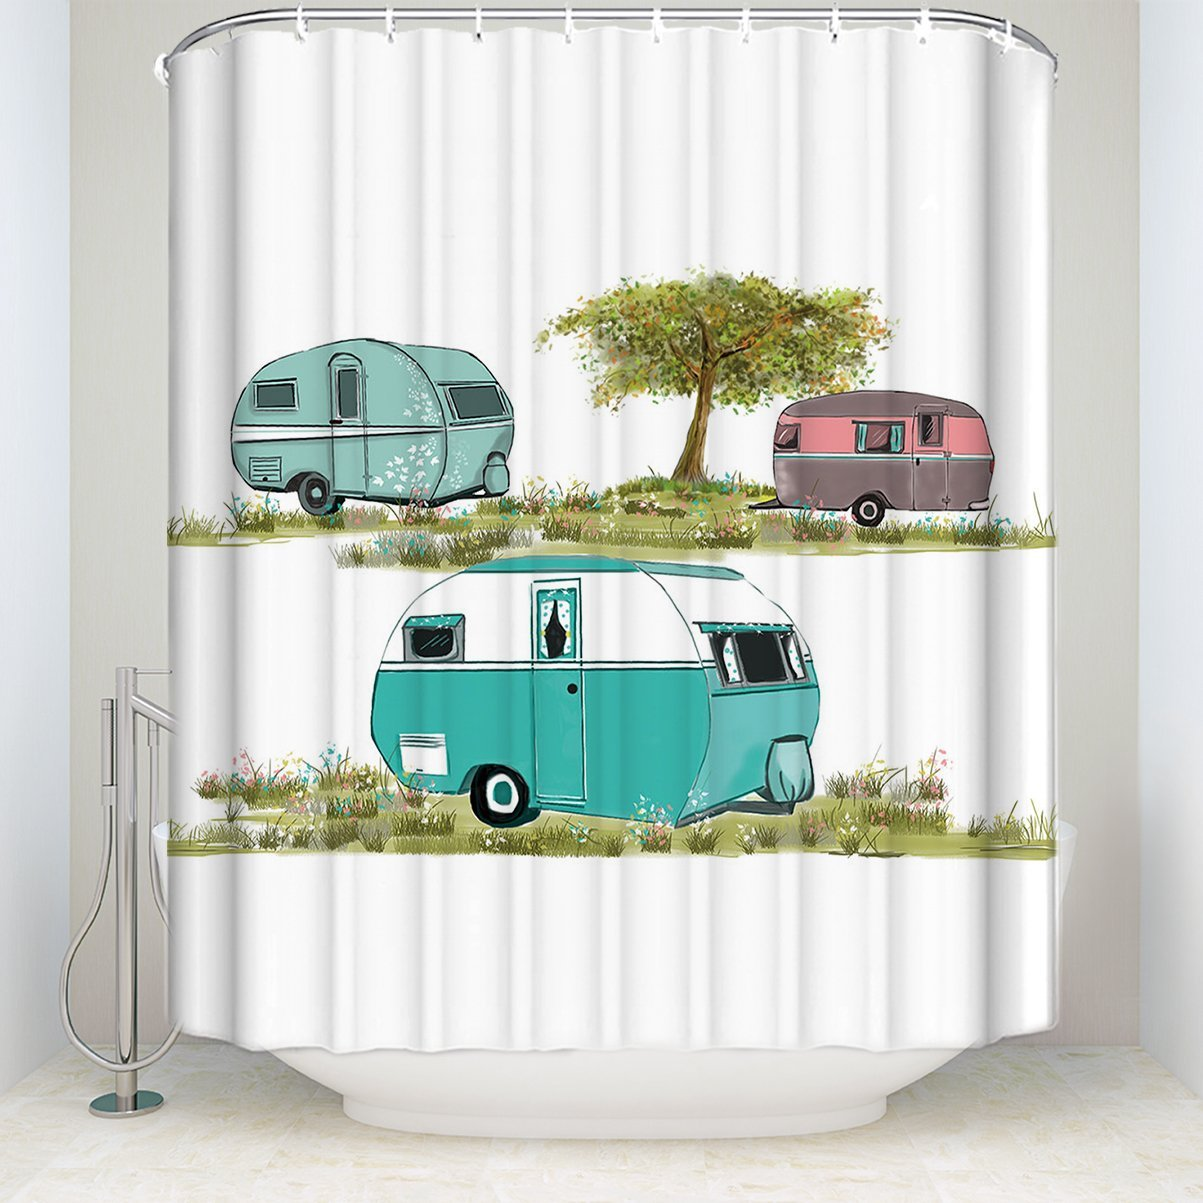 Trailer Curtains Us 16 81 37 Off Retro Camping Shower Curtain Vintage Travel Trailer Decor Bathroom Decor With Hooks Polyester Fabric Waterproof Shower Curtains In